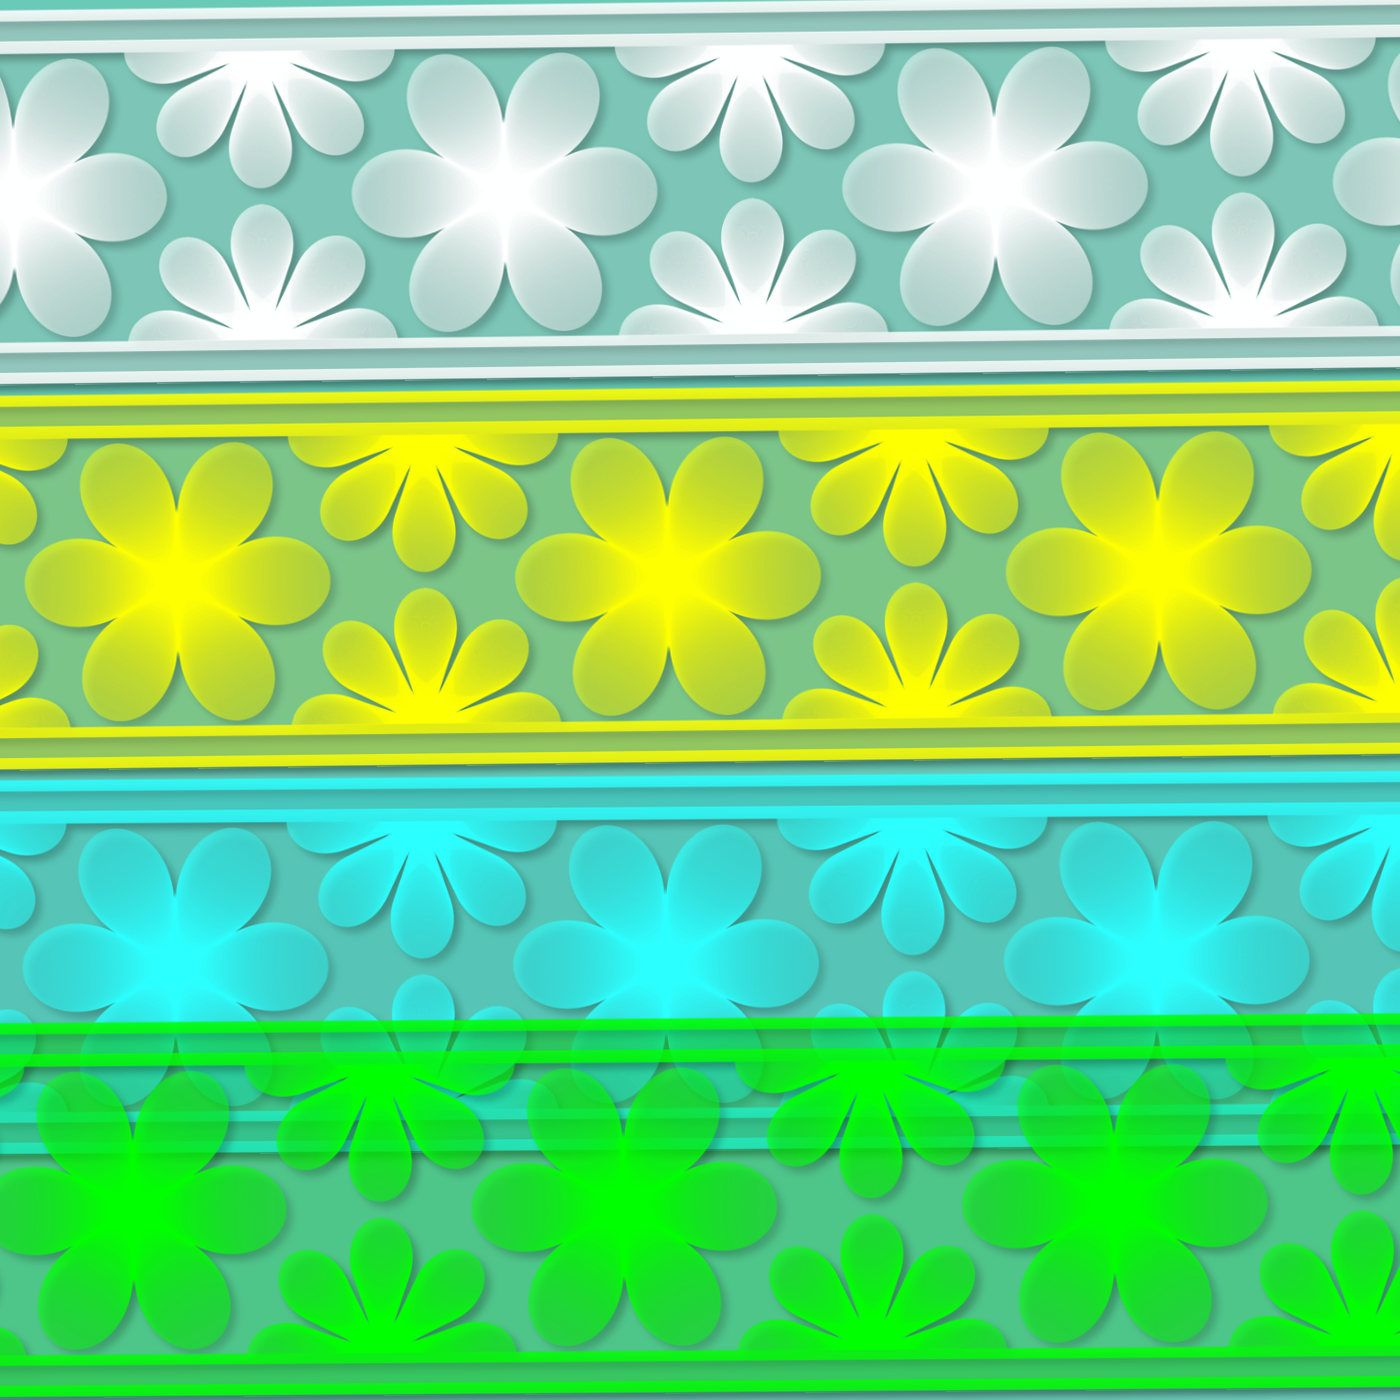 Laser background galleryhip com the hippest galleries - Delicate Lace Transparent Borders Elegant Png Lace Flowers 3d White Snowflakes